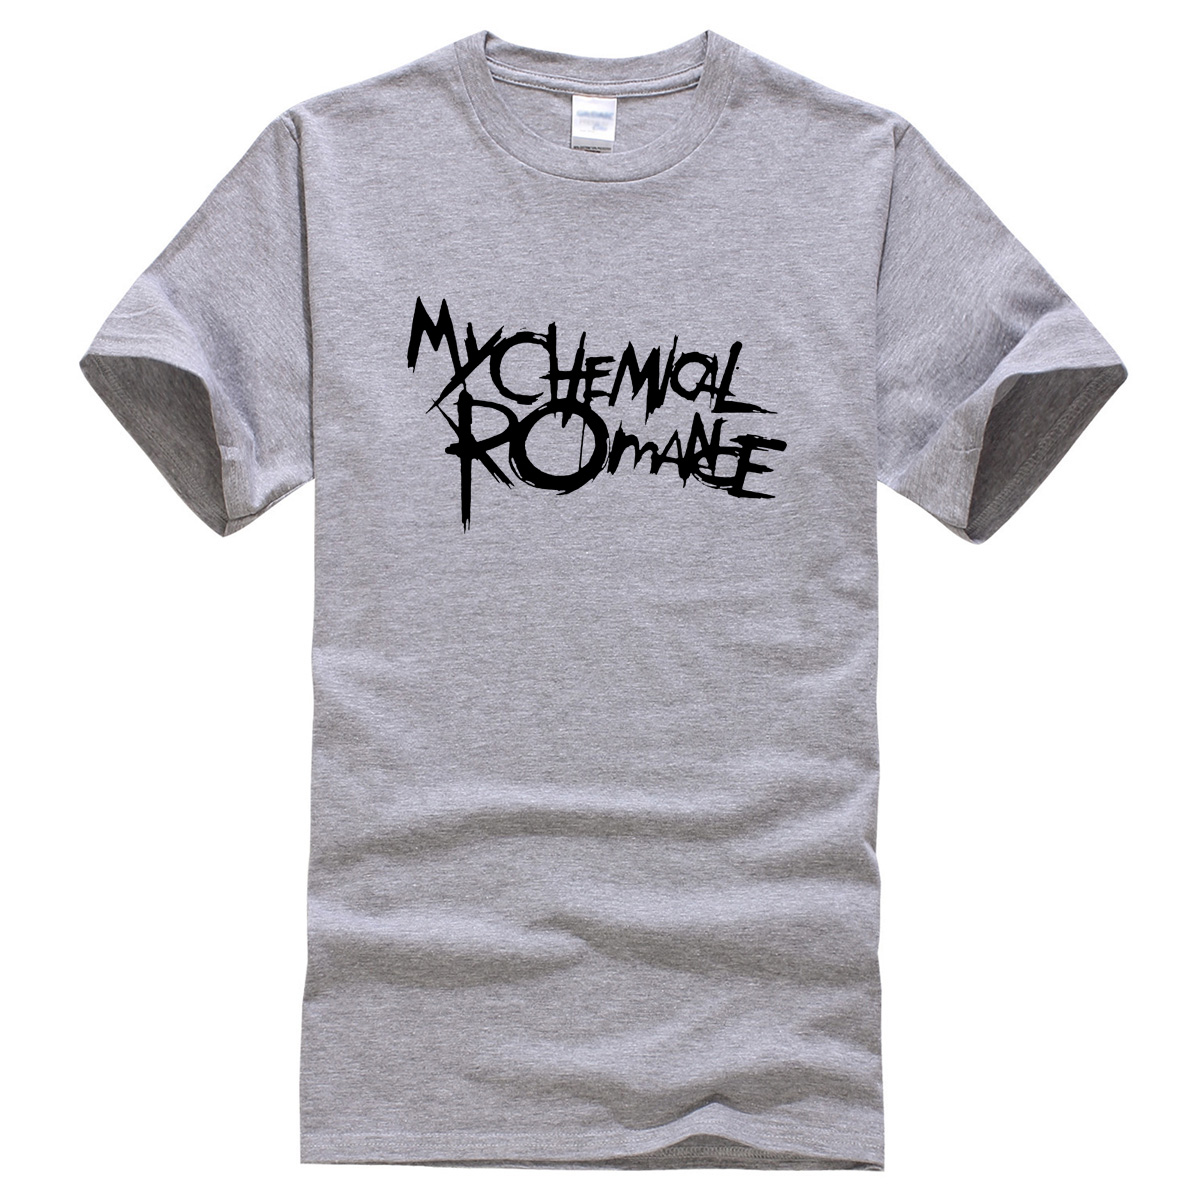 Summer 2018 T-shirt for men My Chemical Romance funny t shirts cotton fashion casual mens T-shirts jersey t shirt homme top